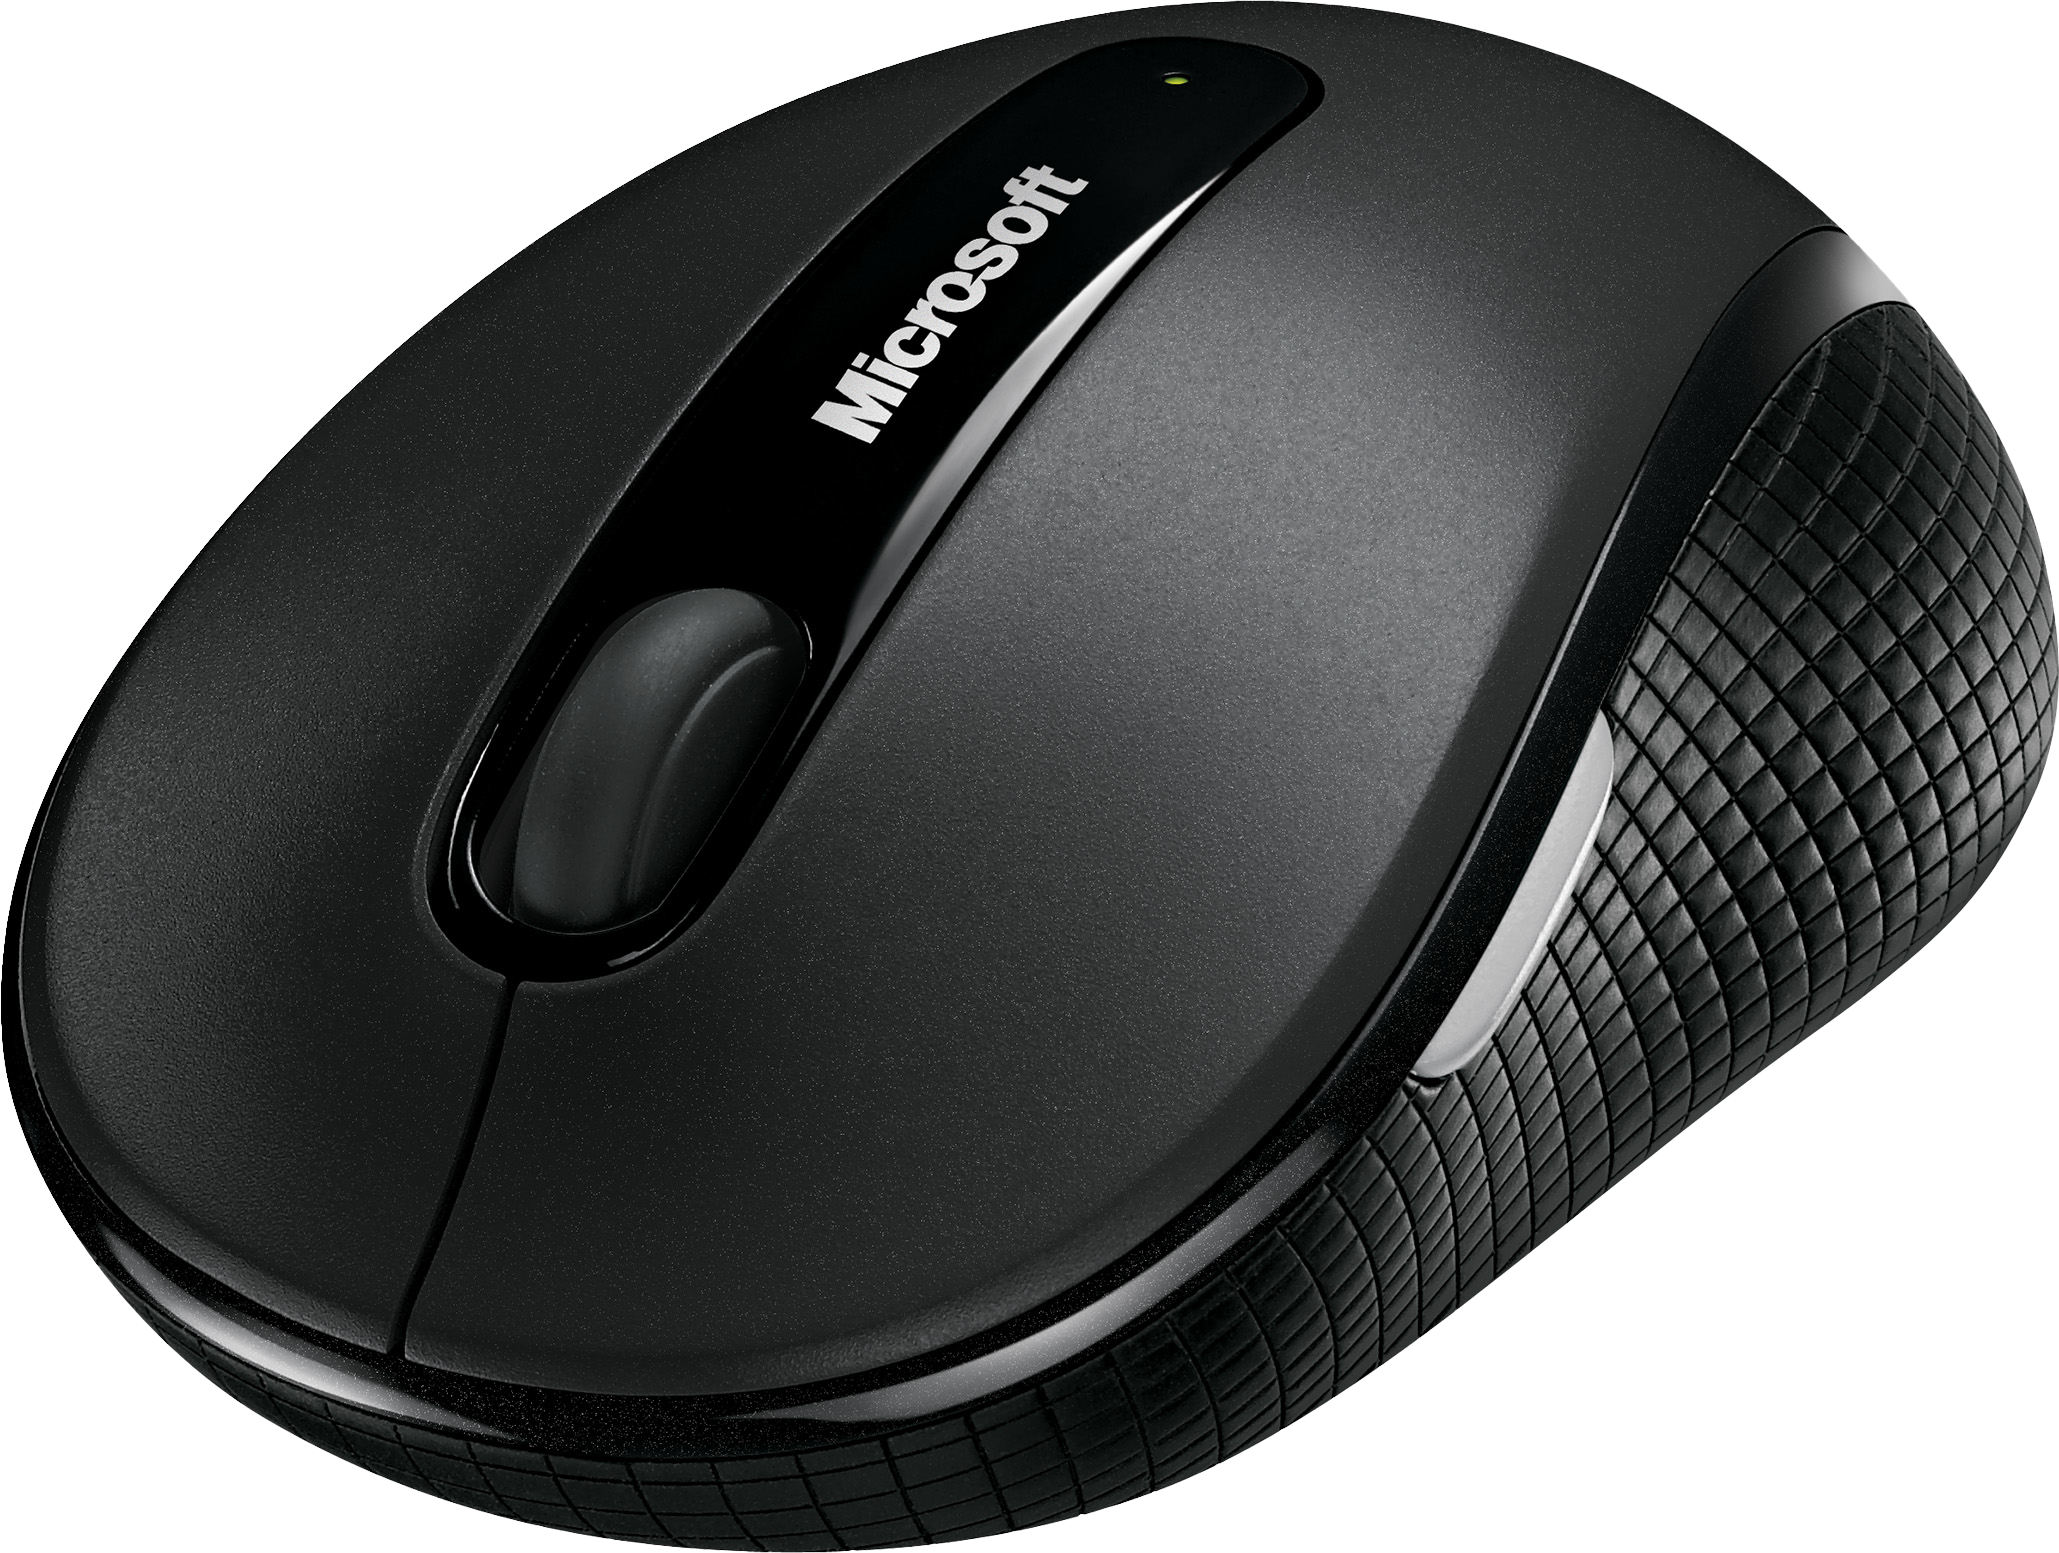 Souris sans fil Wireless Mobile Mouse 4000 de Microsoft (Graphite)